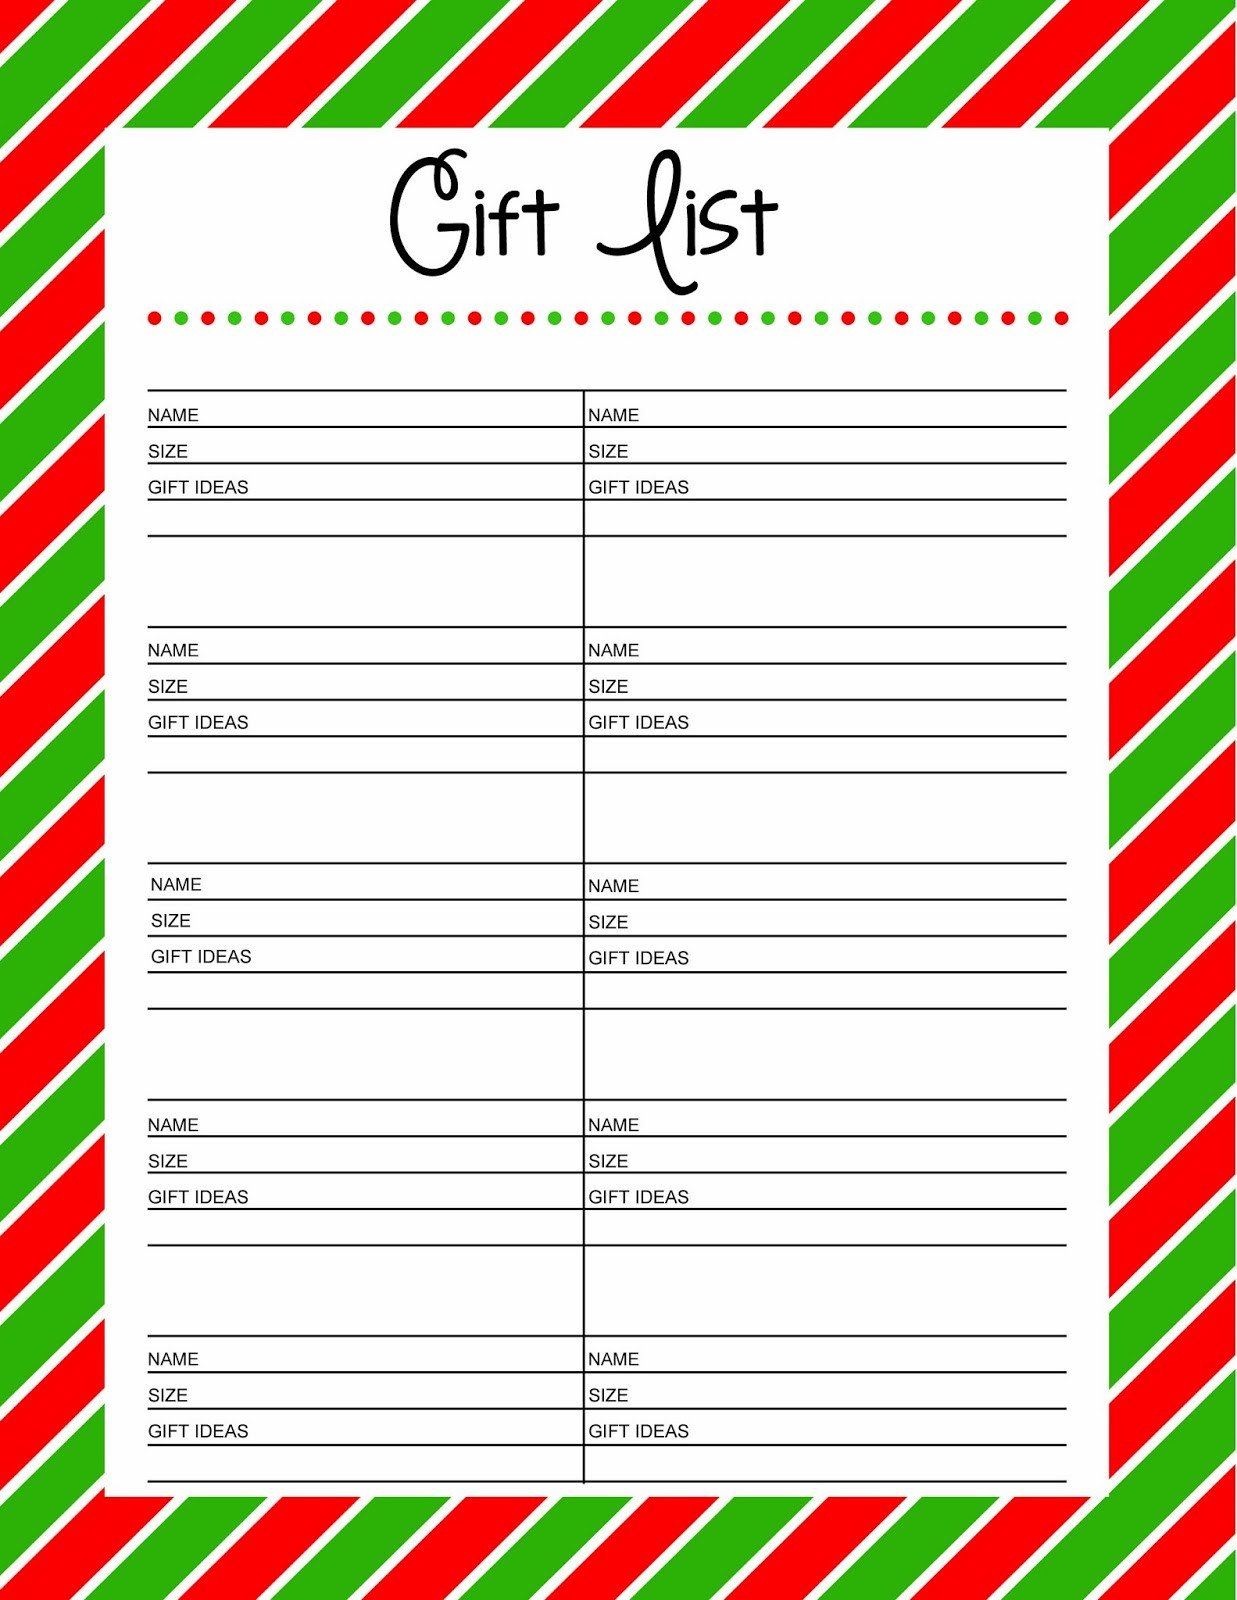 Christmas Gift Lists Templates Free Printable Gift List 25 Days to An organized